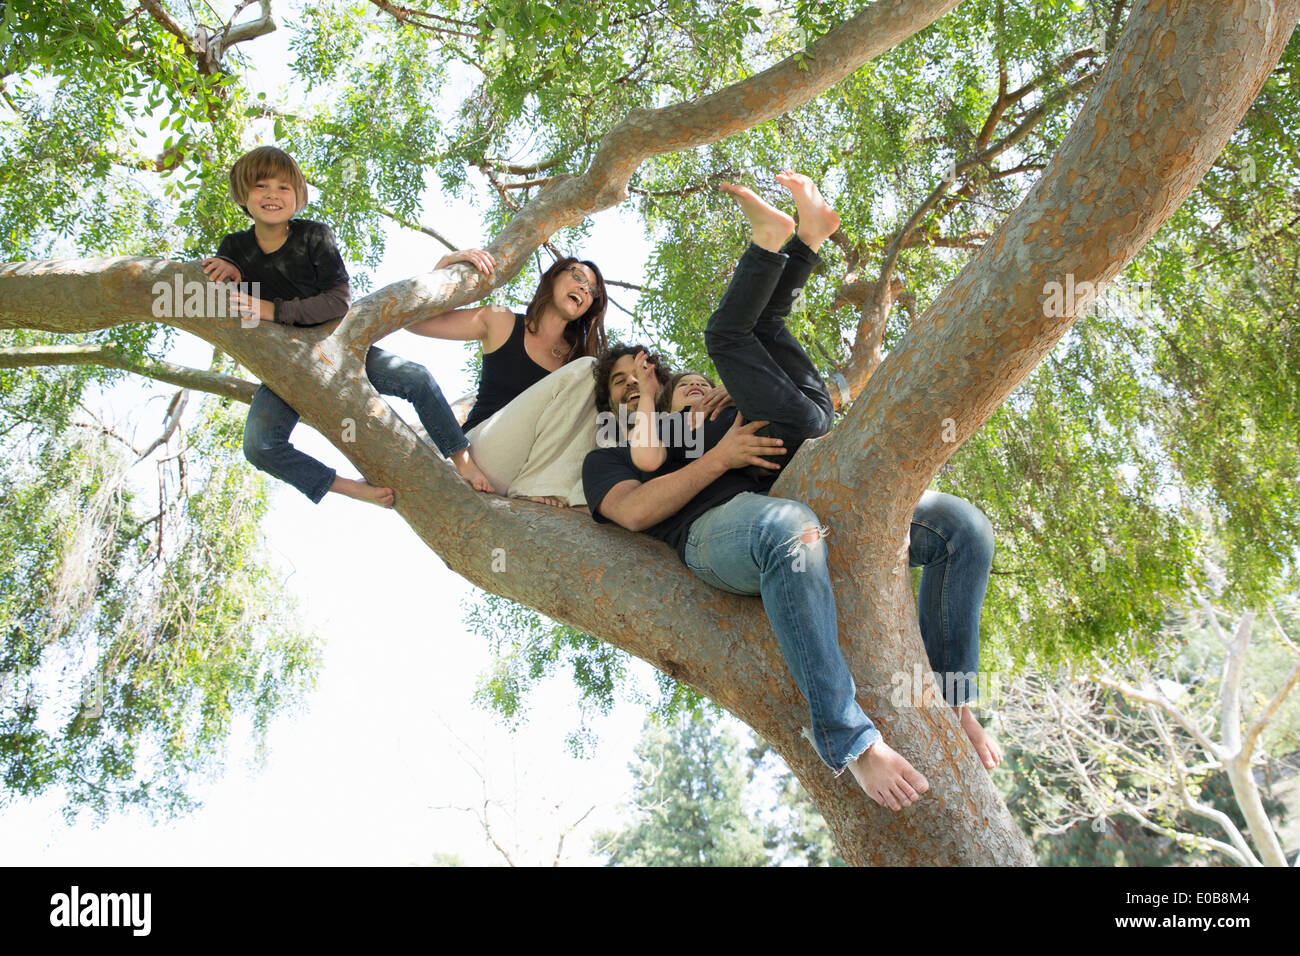 Portrait of family with two boys climbing on park tree - Stock Image